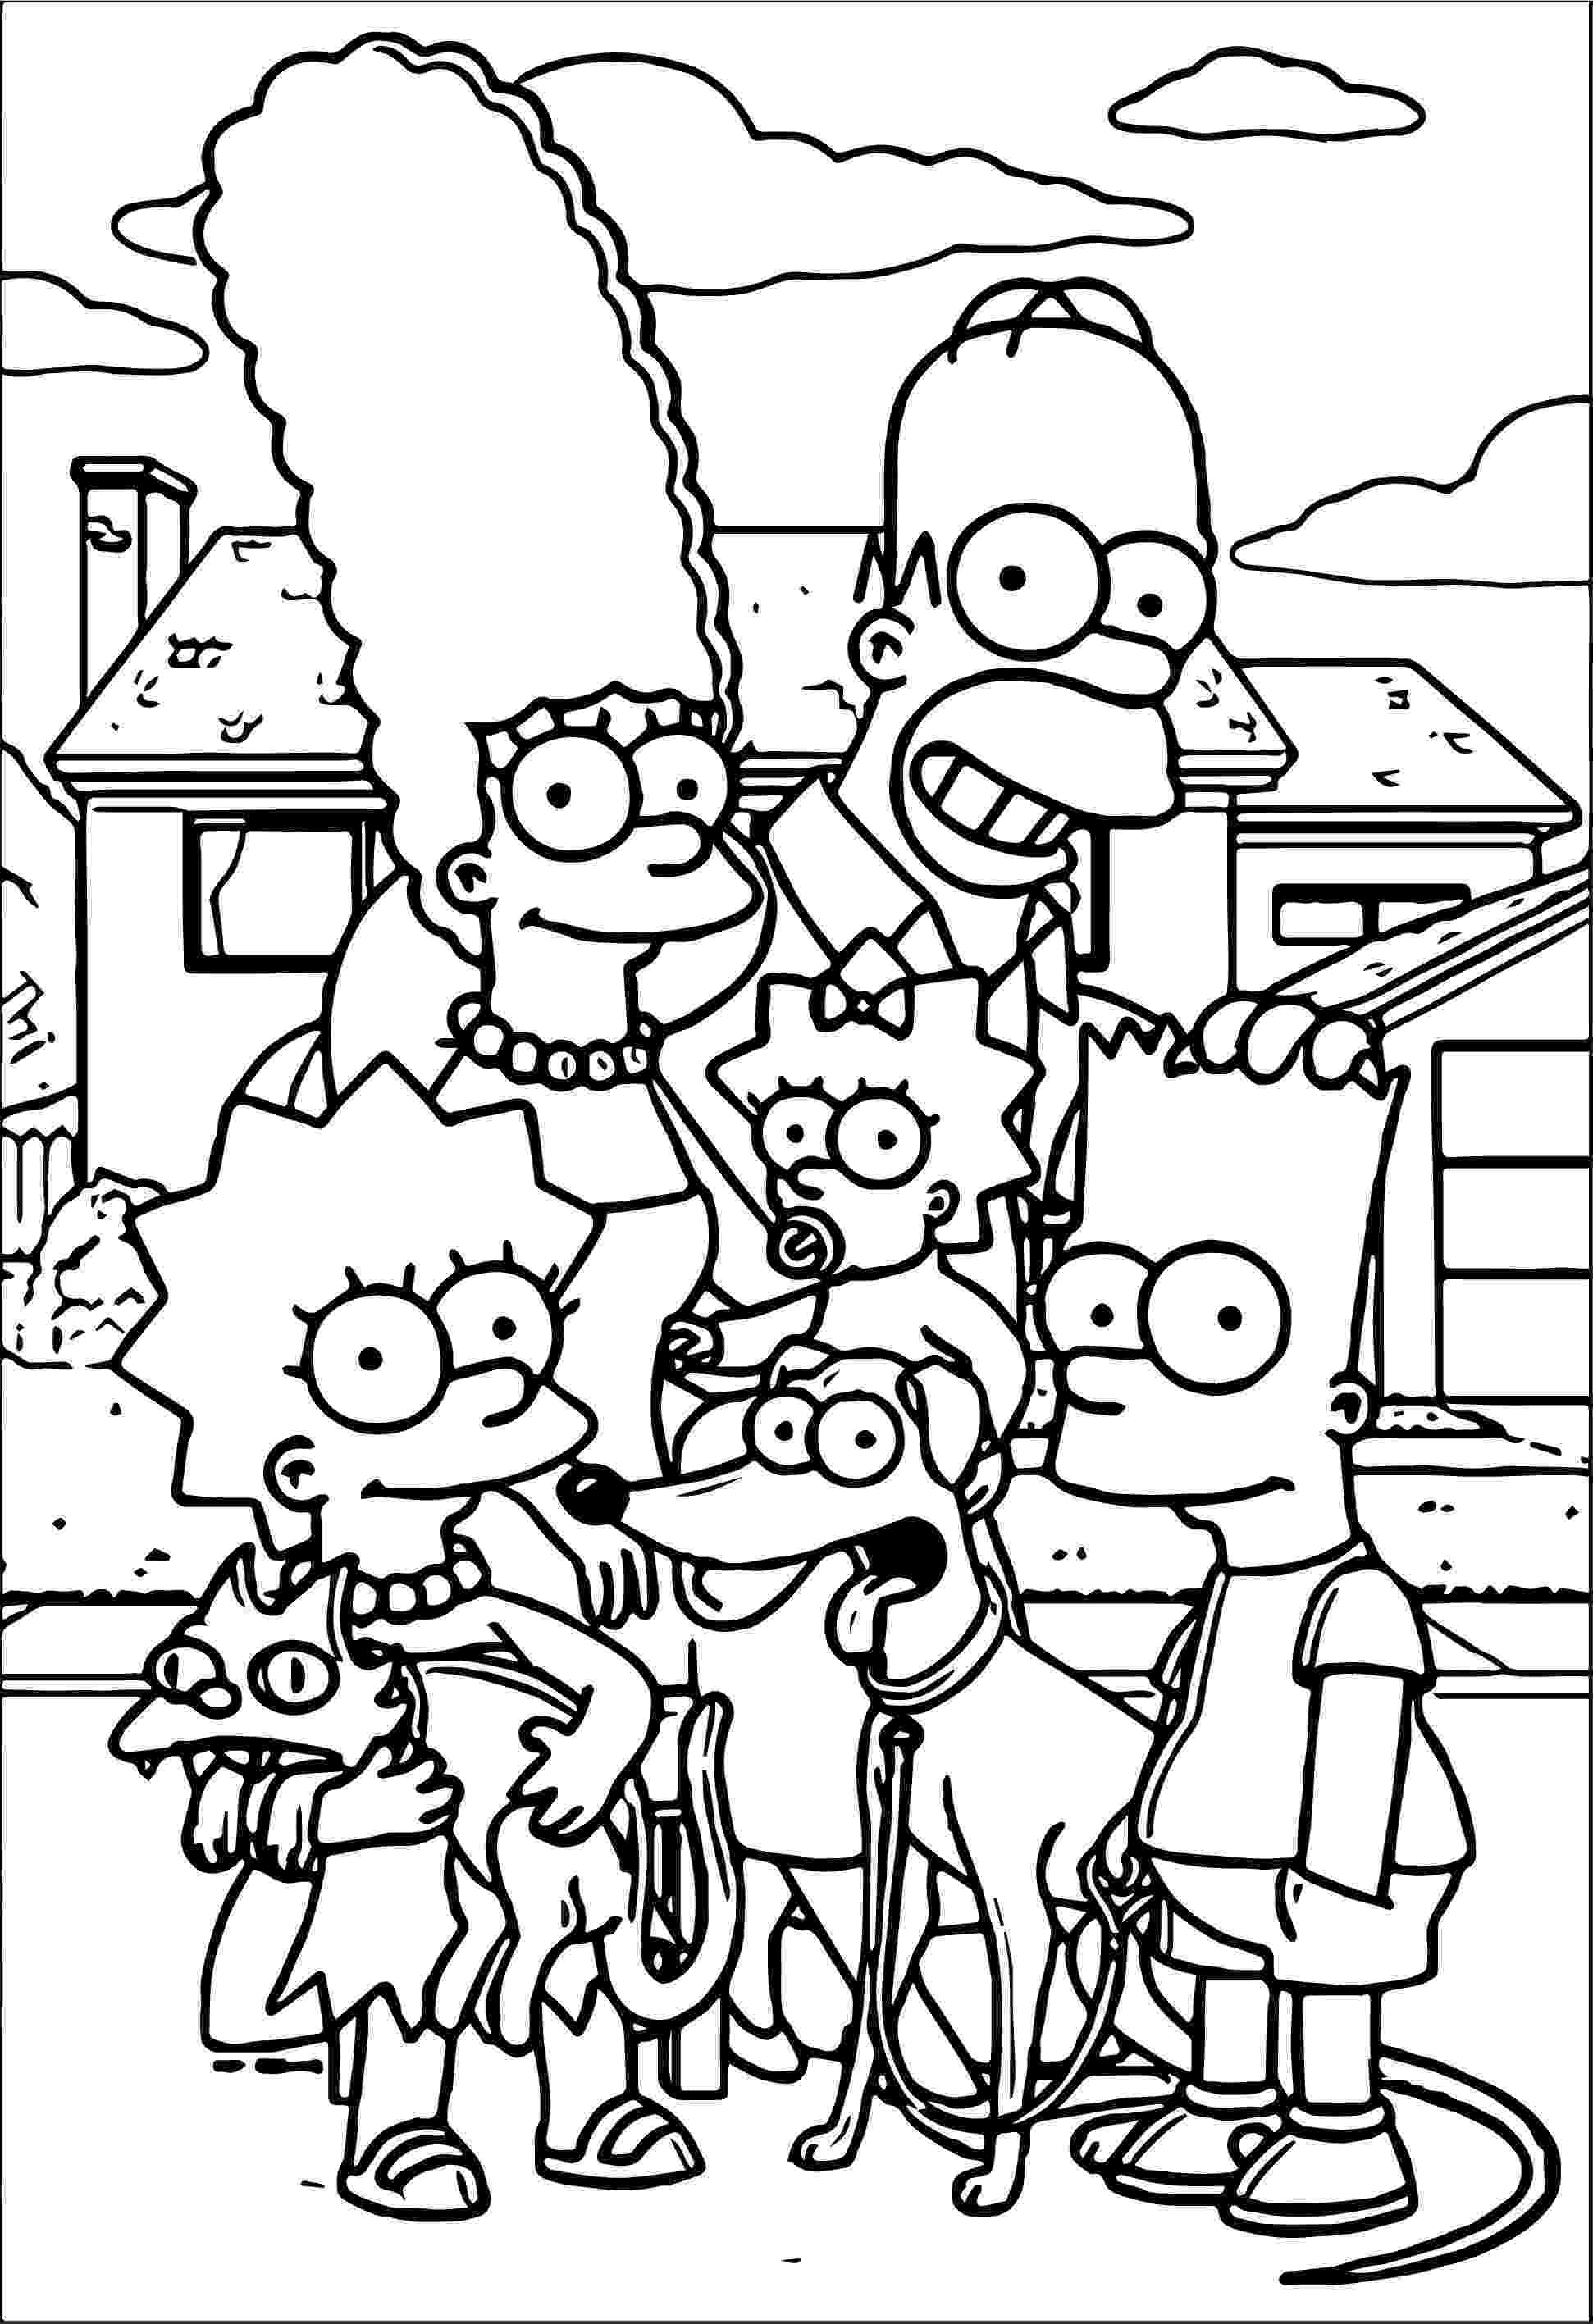 simpson coloring pages bart simpson coloring pages coloring simpson pages